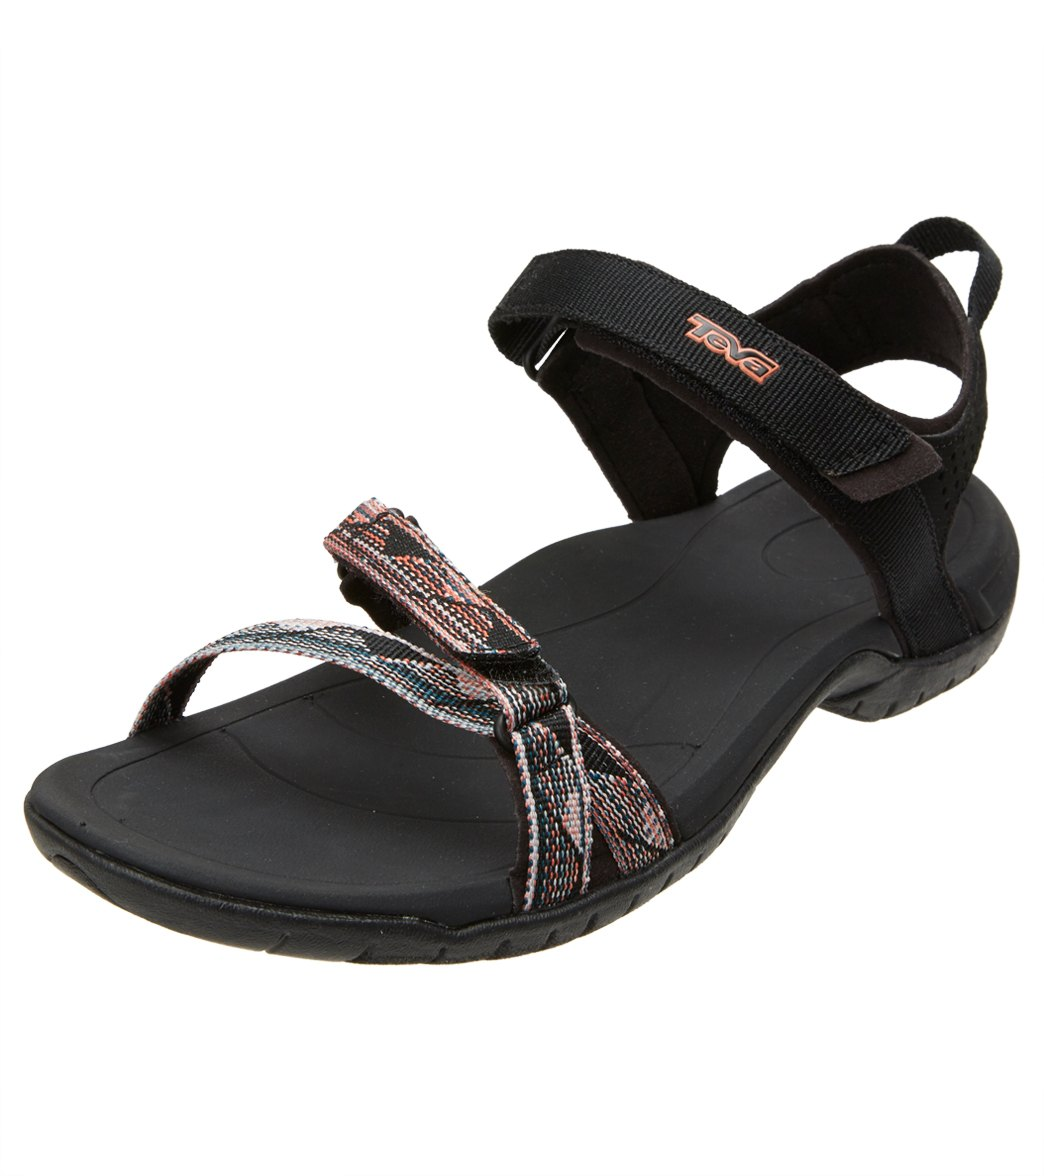 1f3c3869f560 Teva Women s Verra Sandal at SwimOutlet.com - Free Shipping